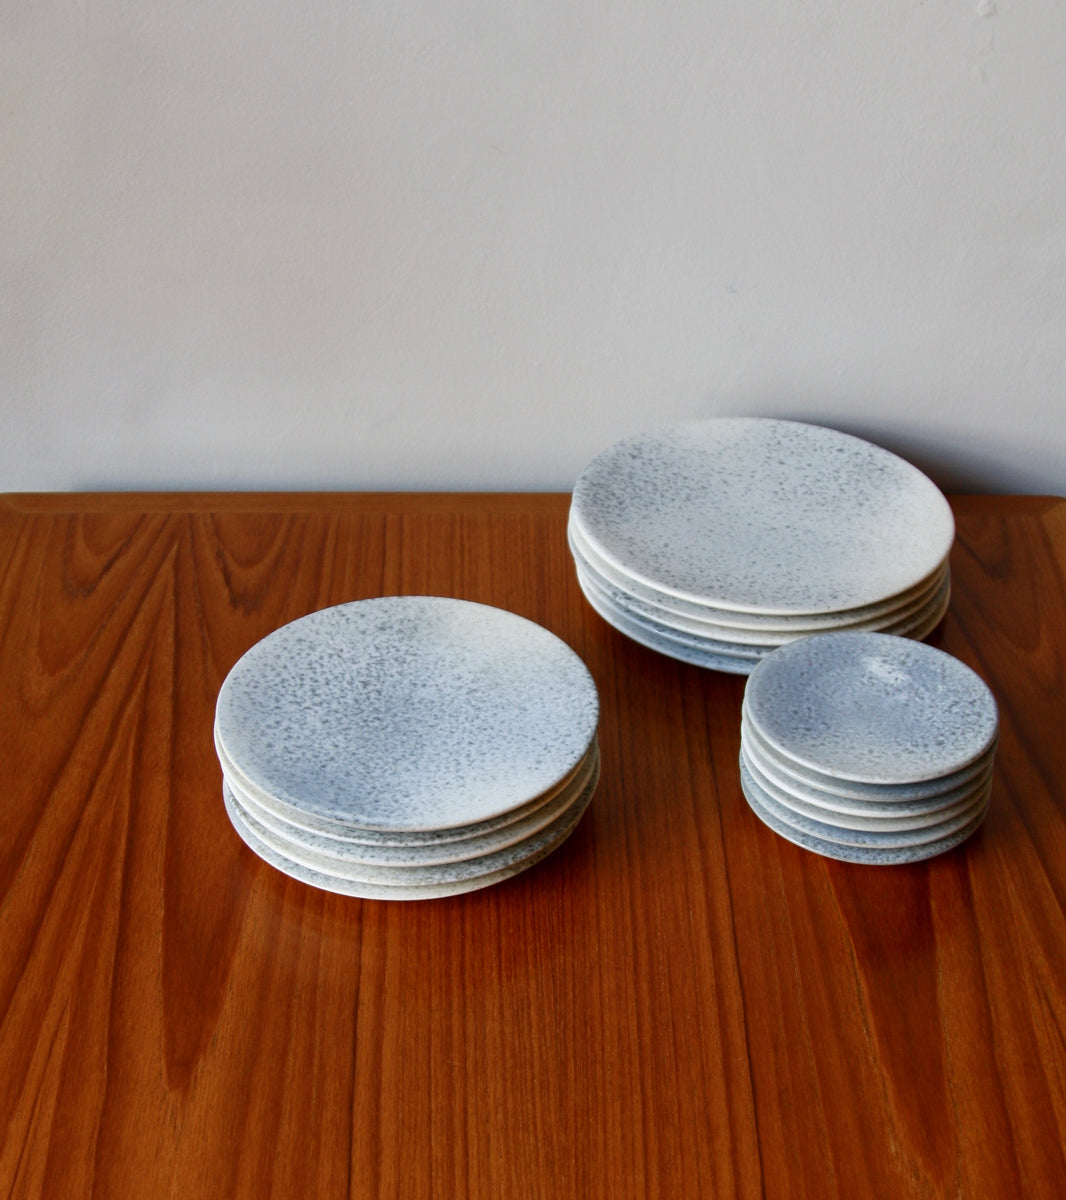 Medium Flat Plate <br>in Stone Blue Glaze <br>by KH Würtz <br>Shape #5